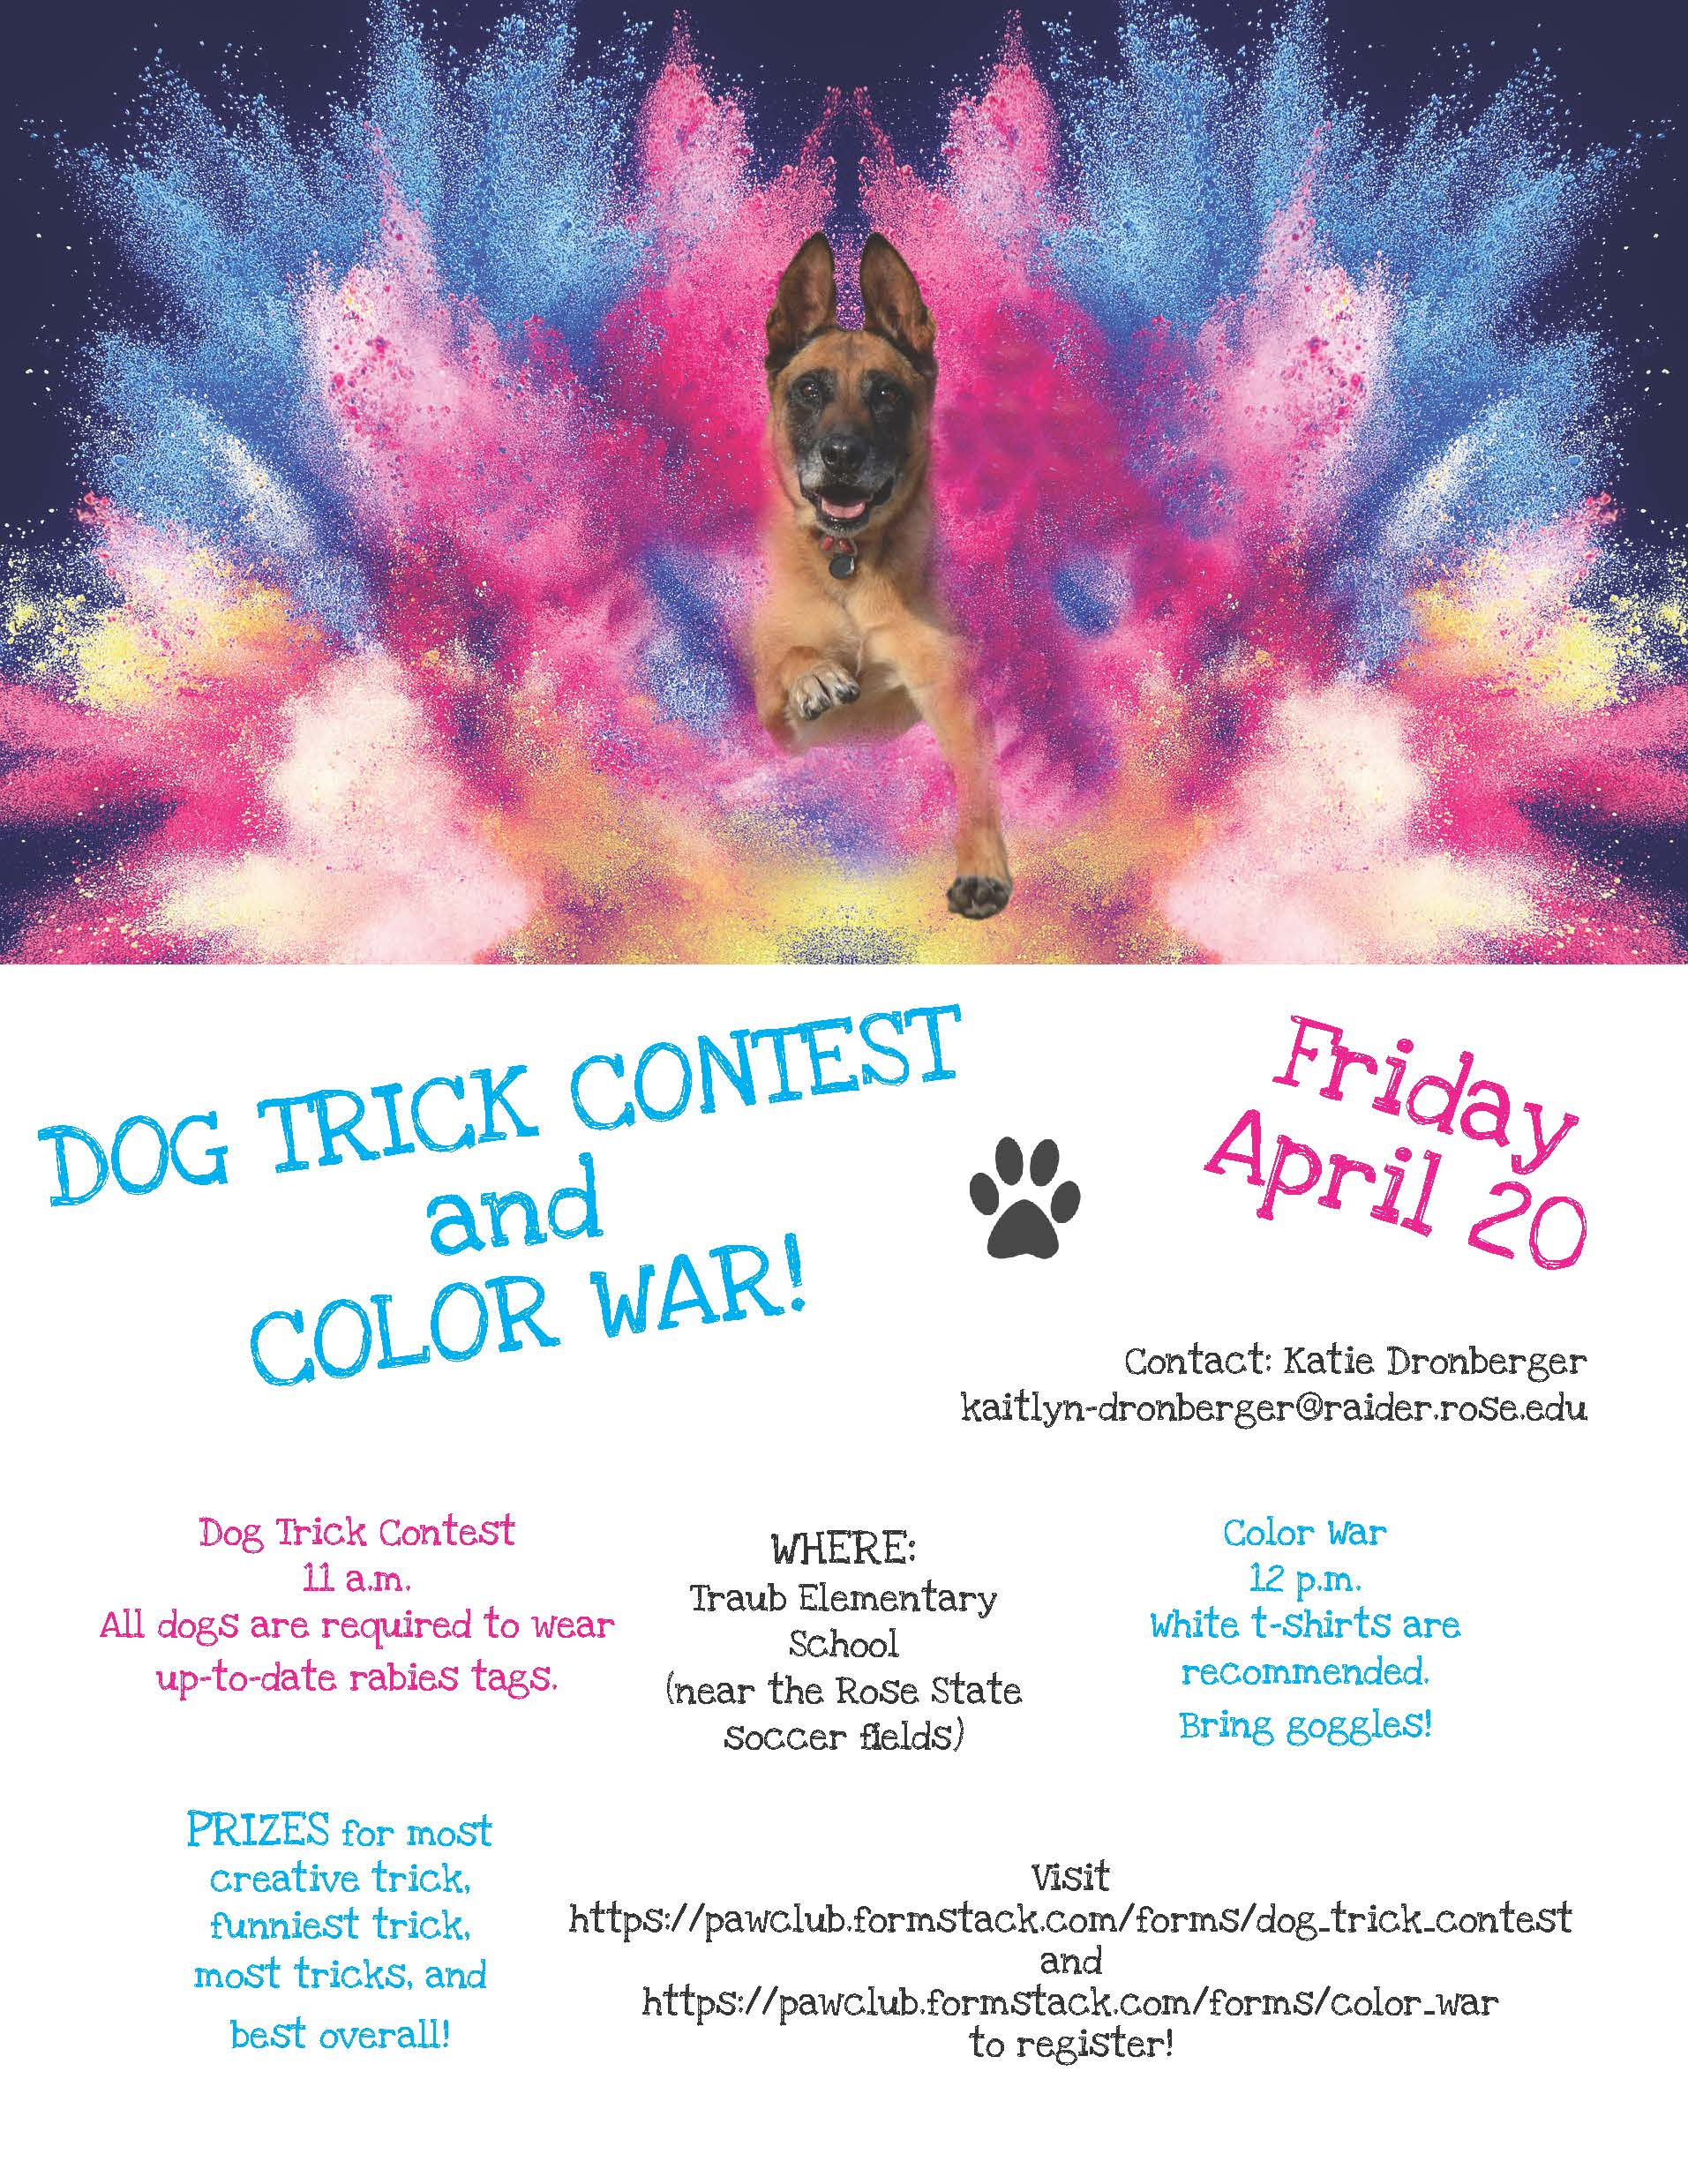 Dog Trick Contest and Color War